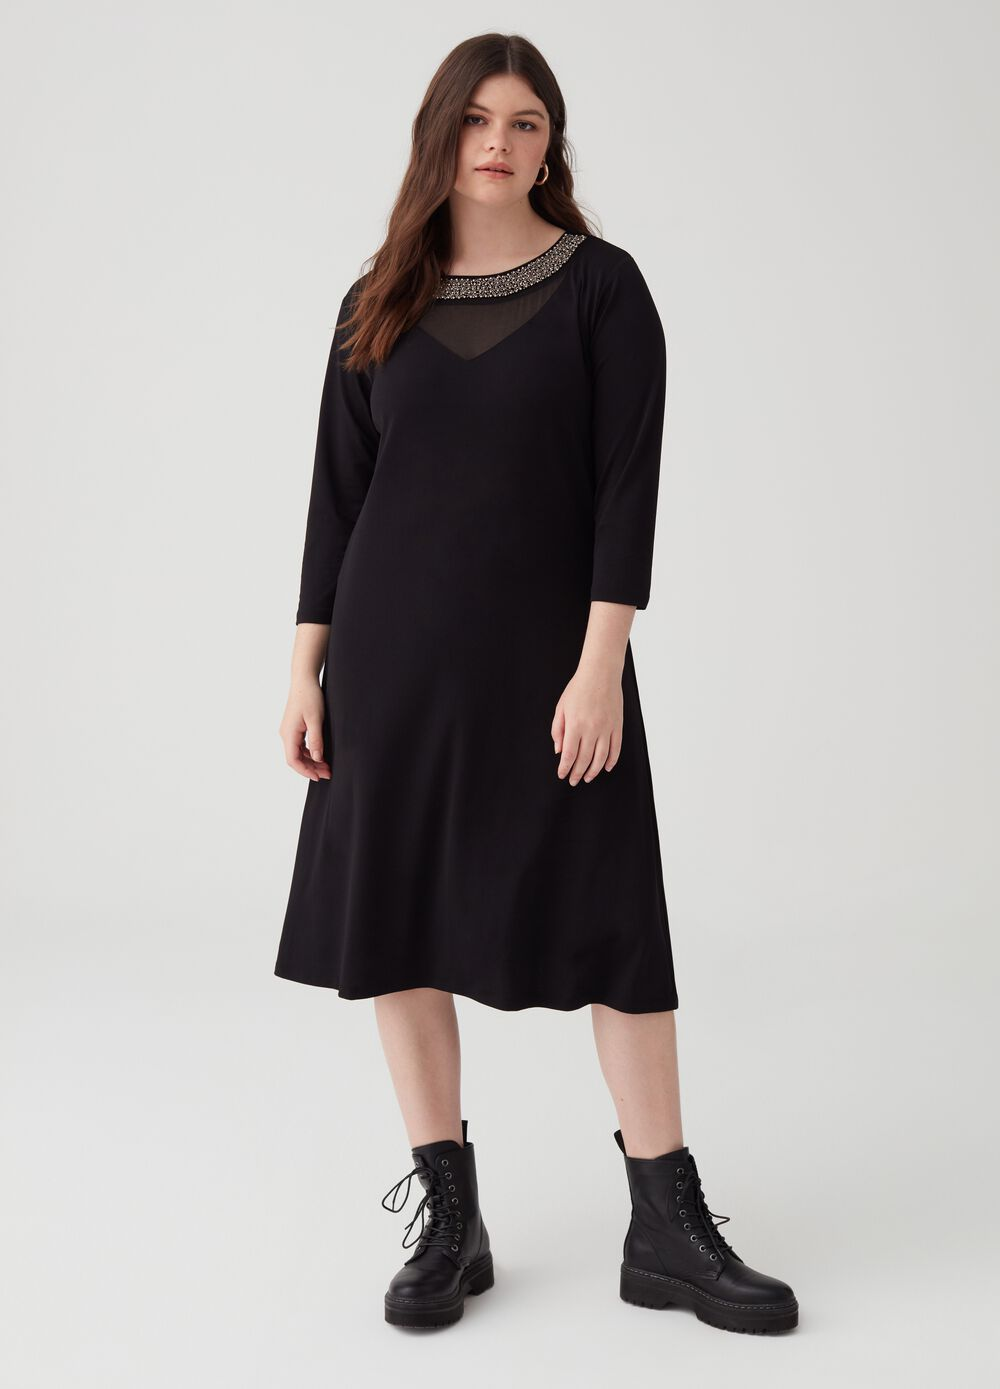 Curvy dress with round neck and beads